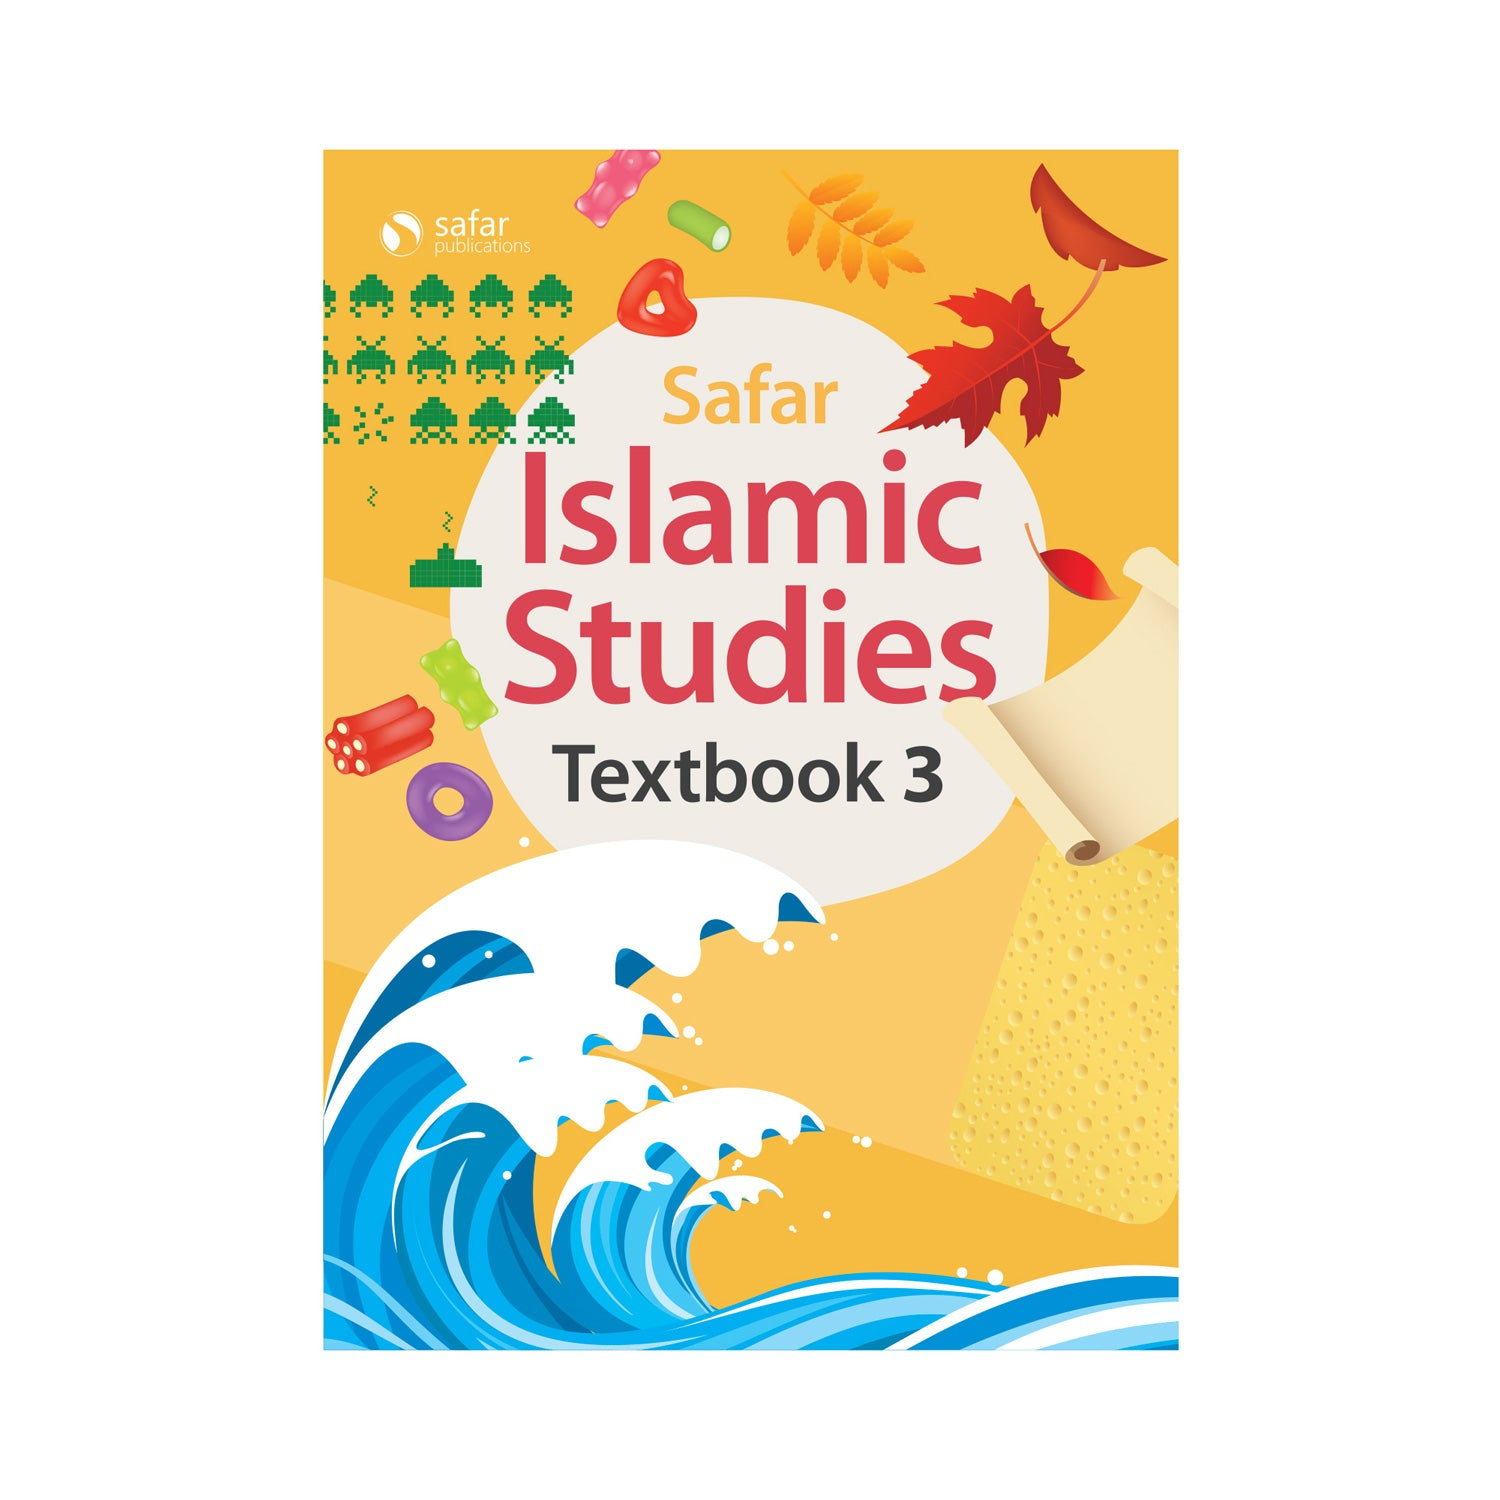 Islamic Studies: Textbook 3 – Learn about Islam Series by Safar